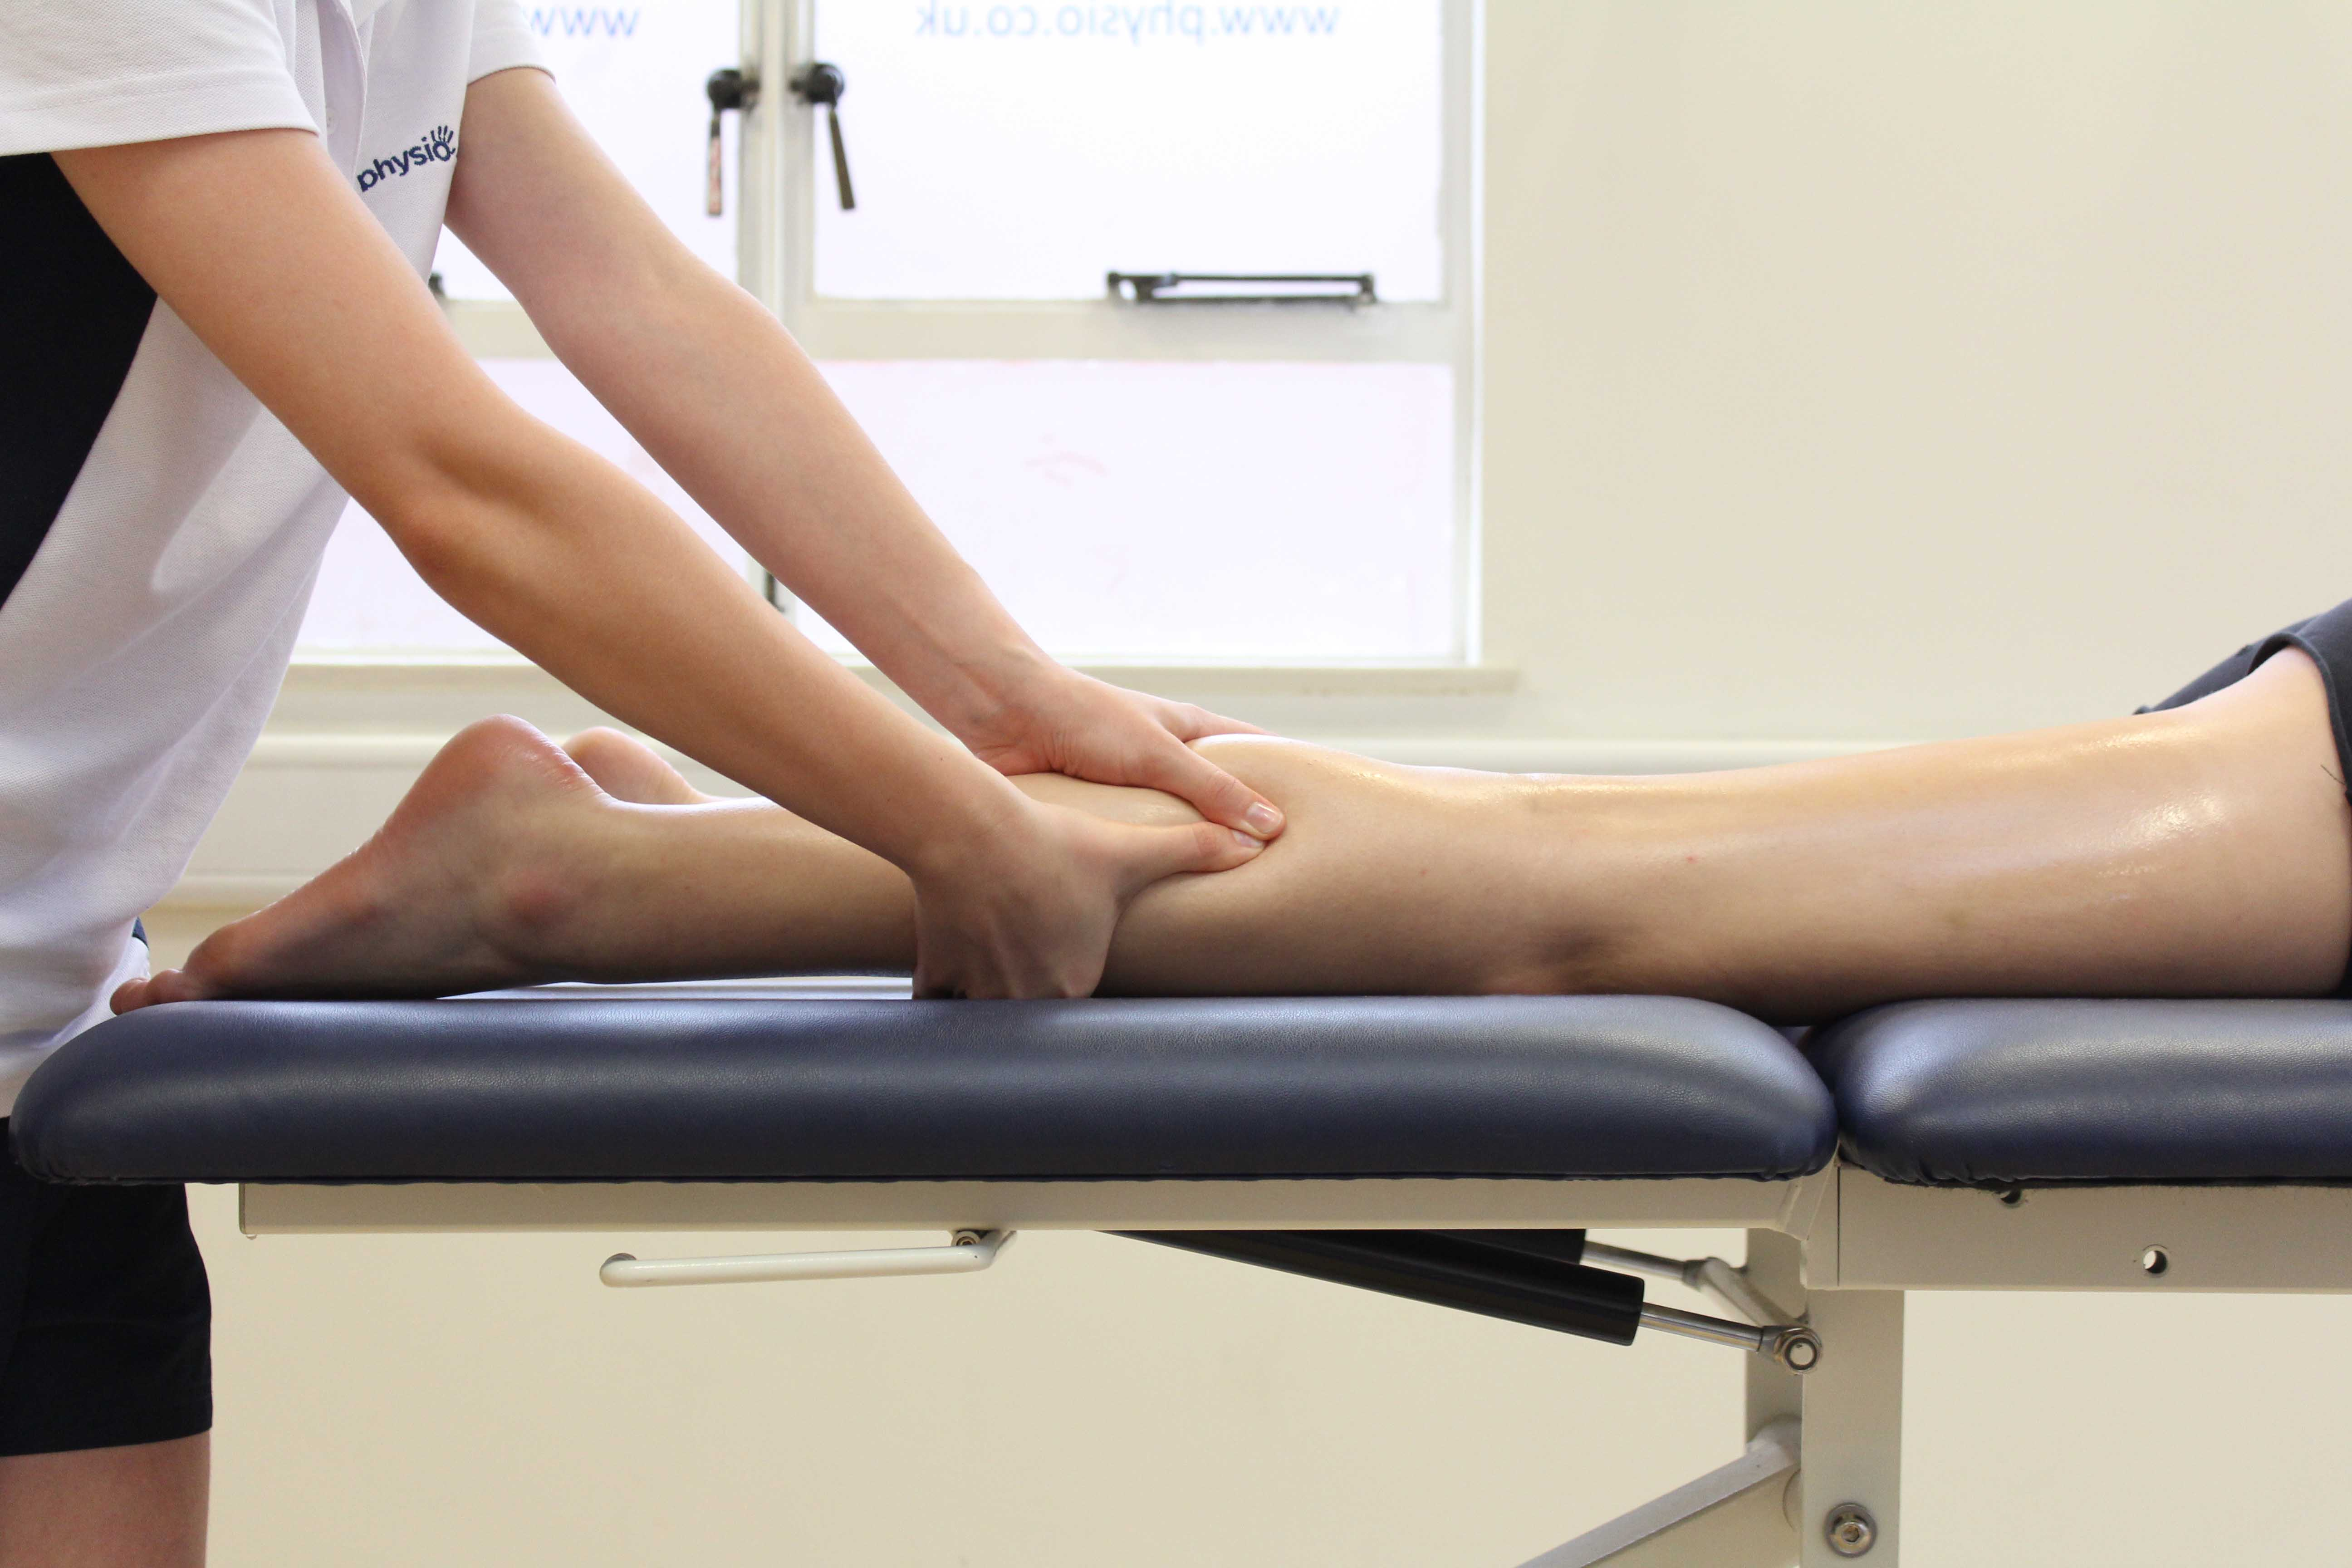 Accupressure massage of the gastroc nemius muscle by physiotherapist